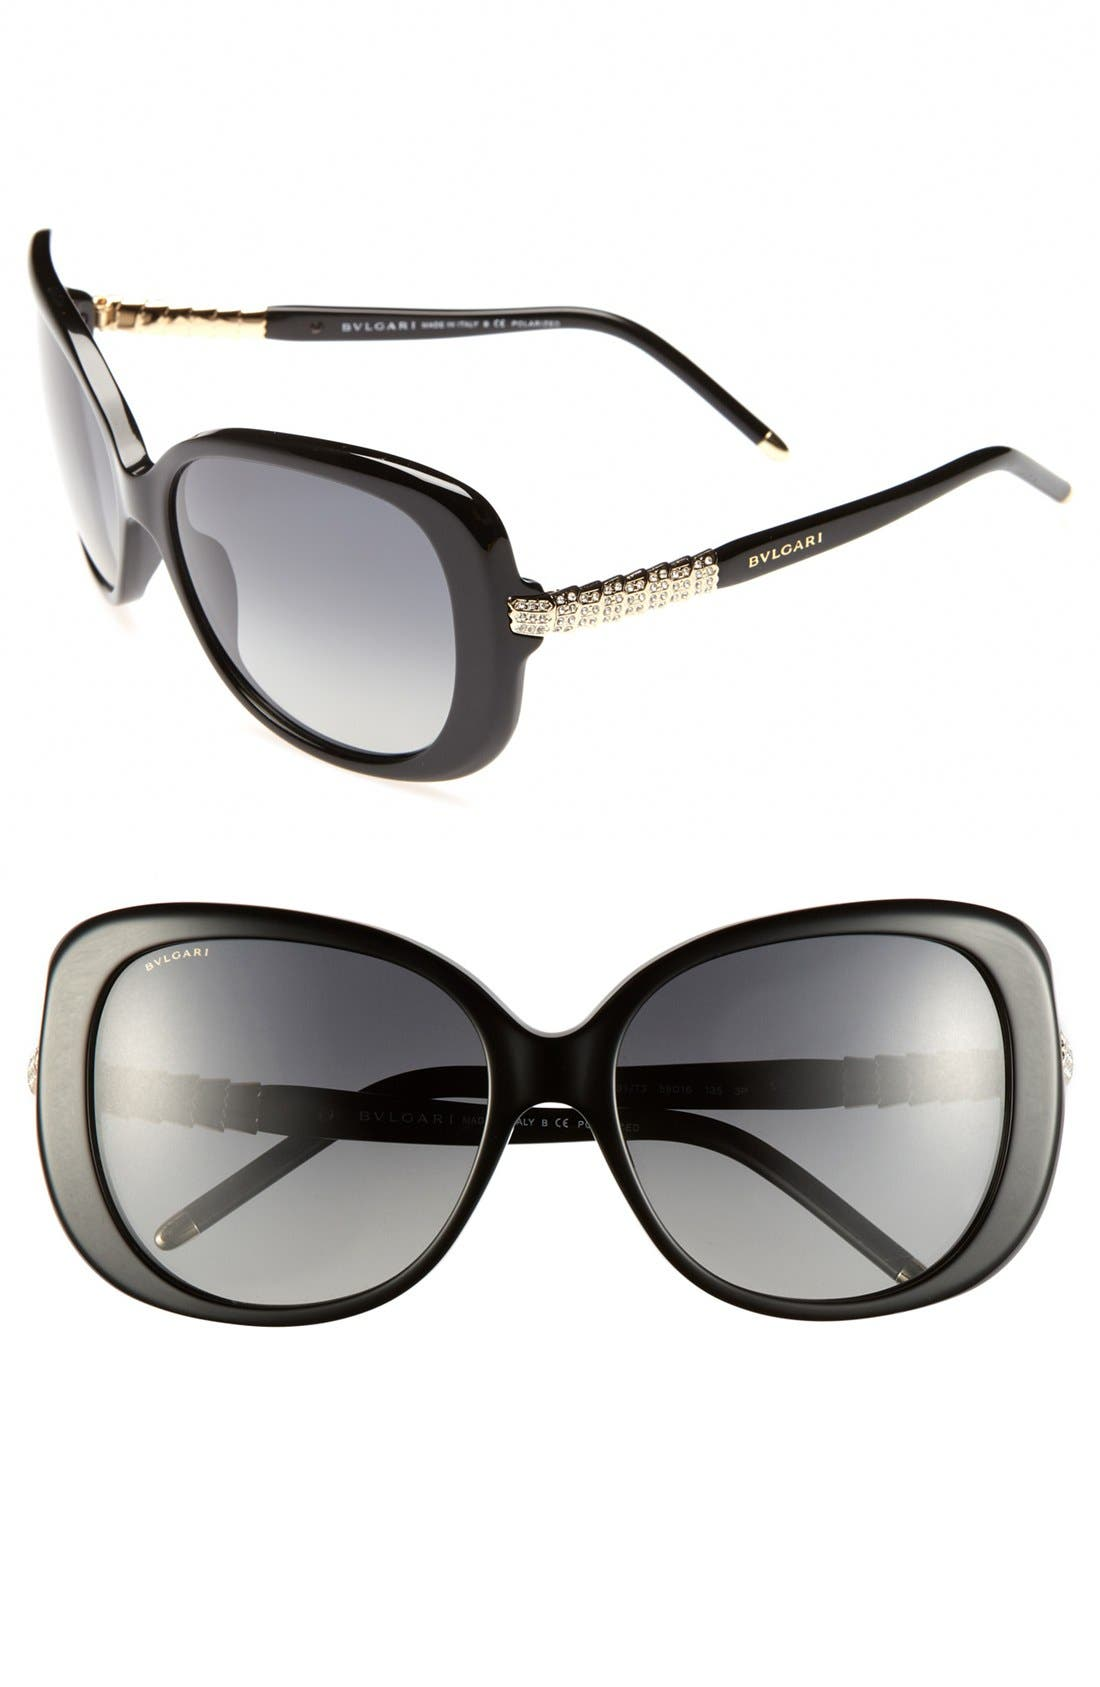 Main Image - BVLGARI 59mm Retro Sunglasses